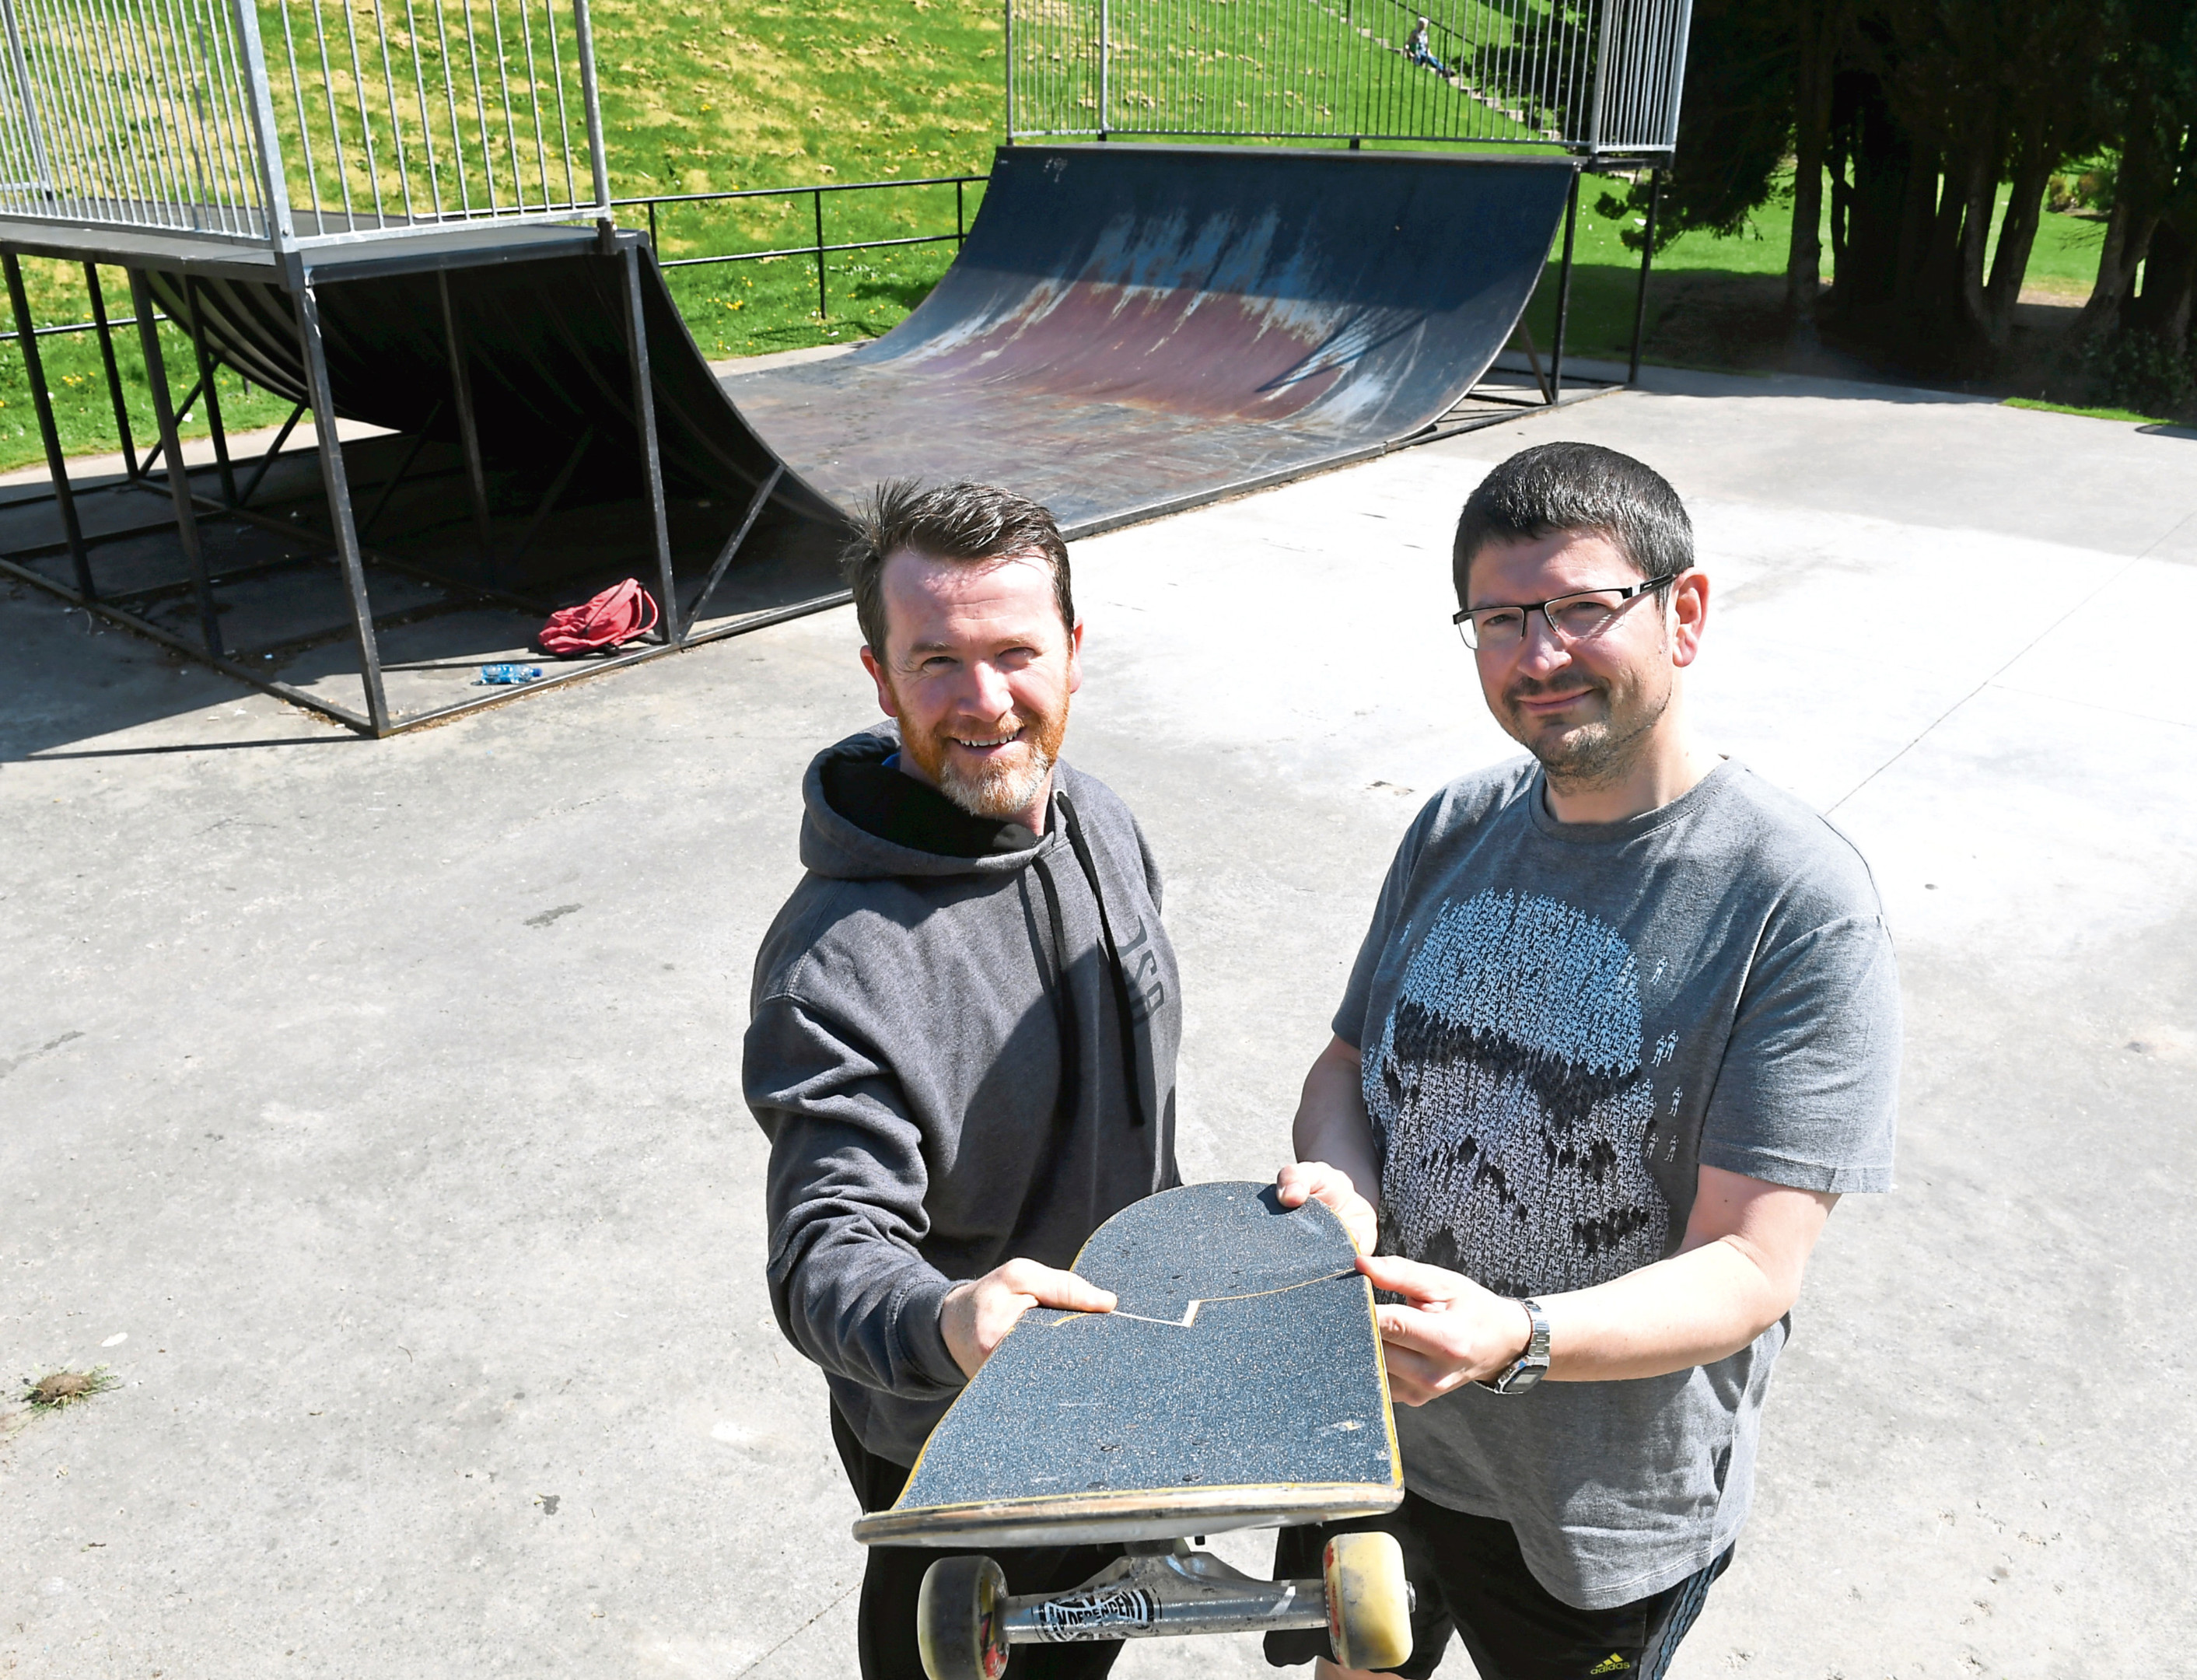 Russ Crichton, chairman of the Banchory Skatepark and Bruce Skinner a committee member